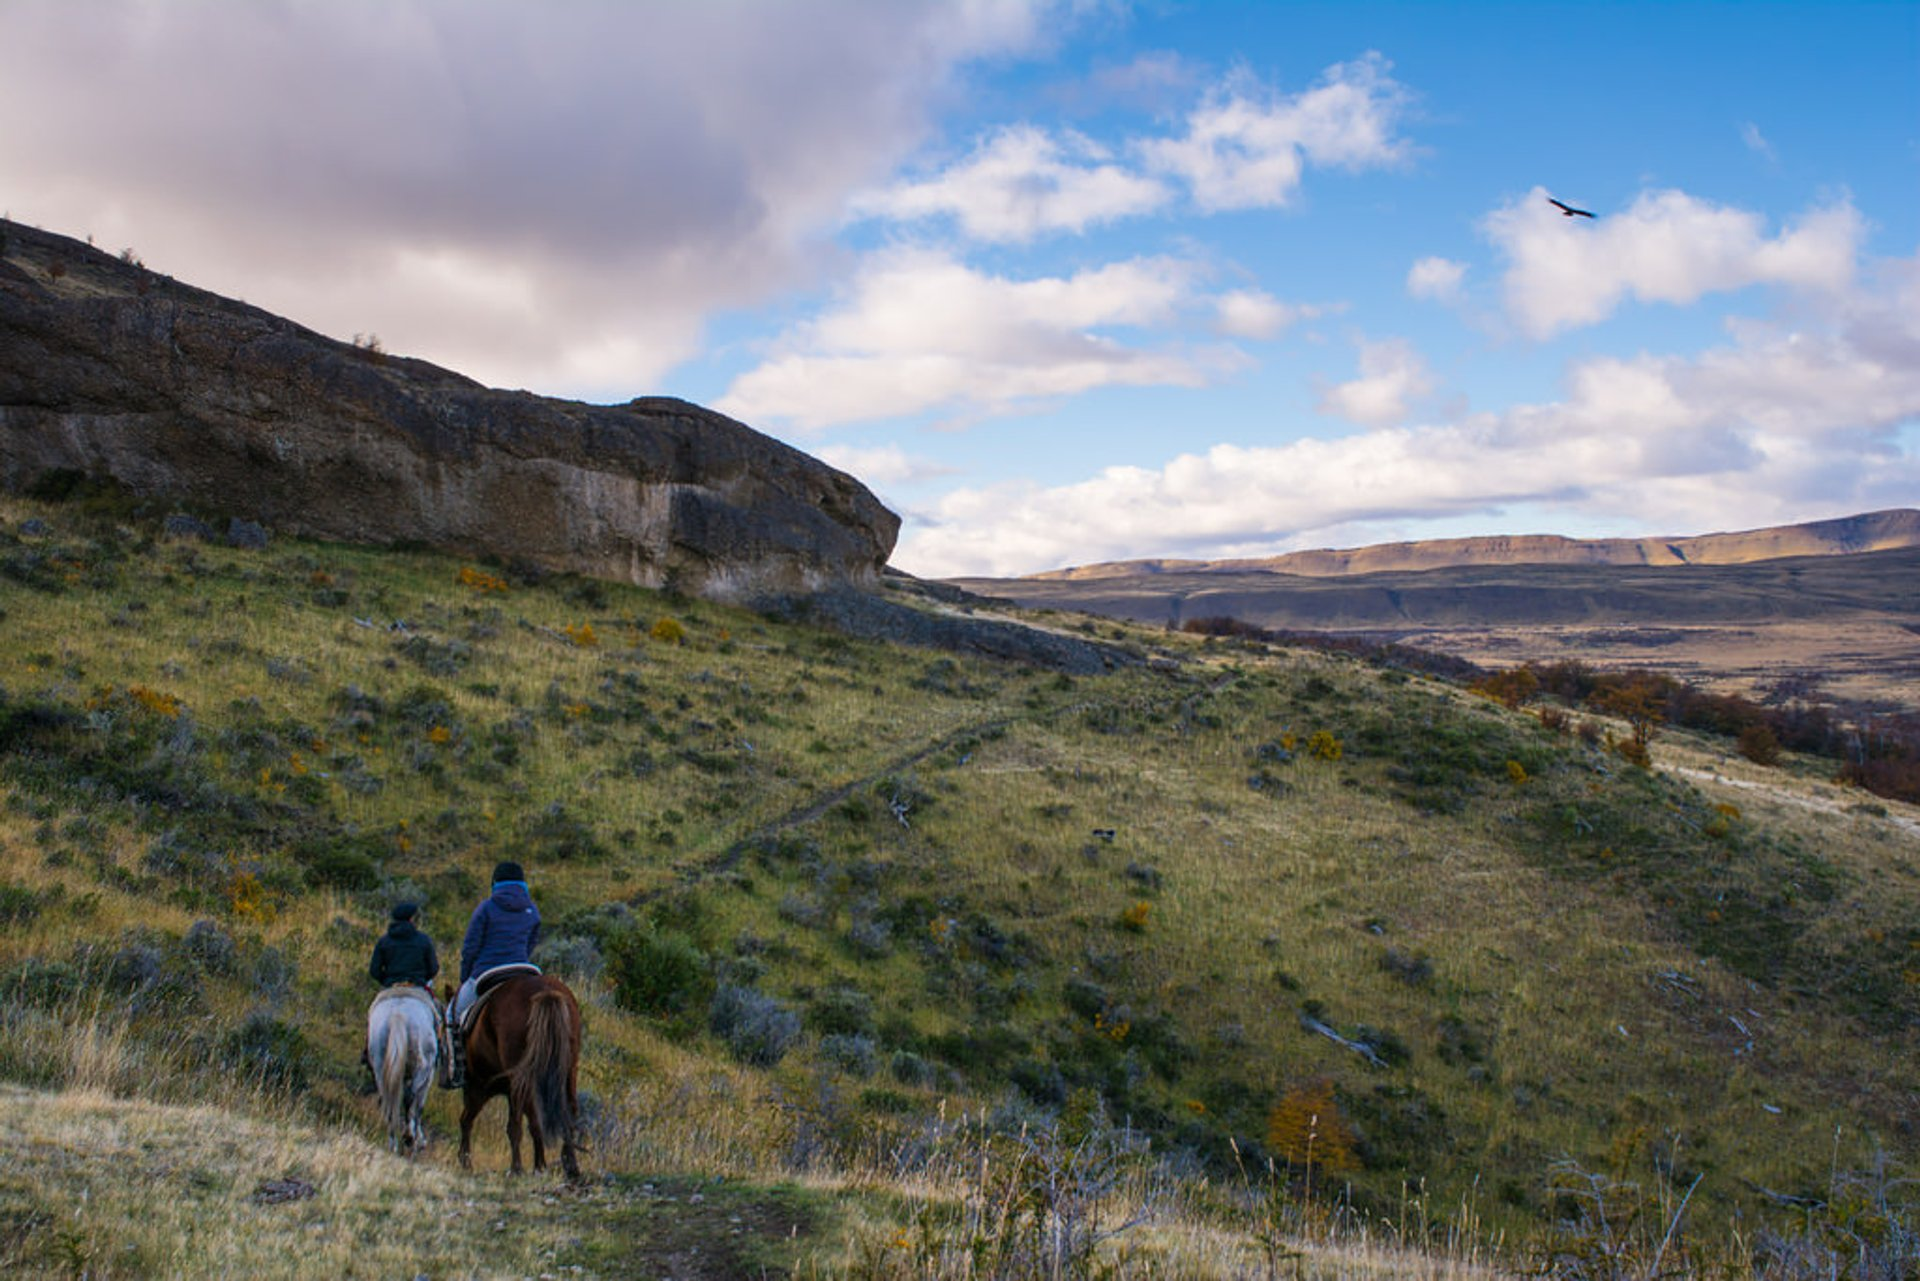 Horseback Riding in the Andes in Chile - Best Season 2019